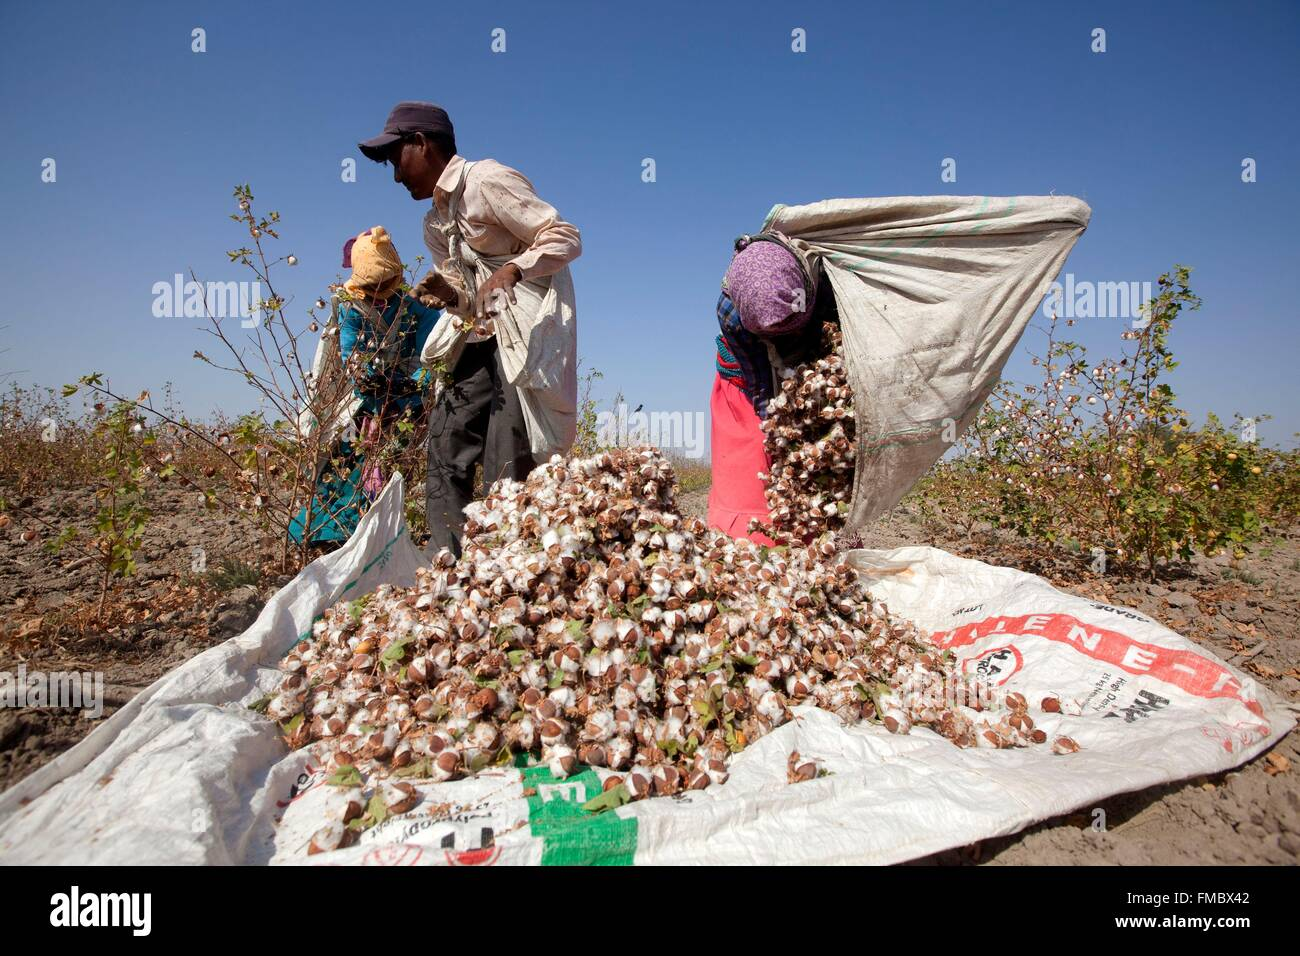 India, Gujarat state, Little Rann of Kutch, workers harvesting cotton (Gossypium sp.) - Stock Image